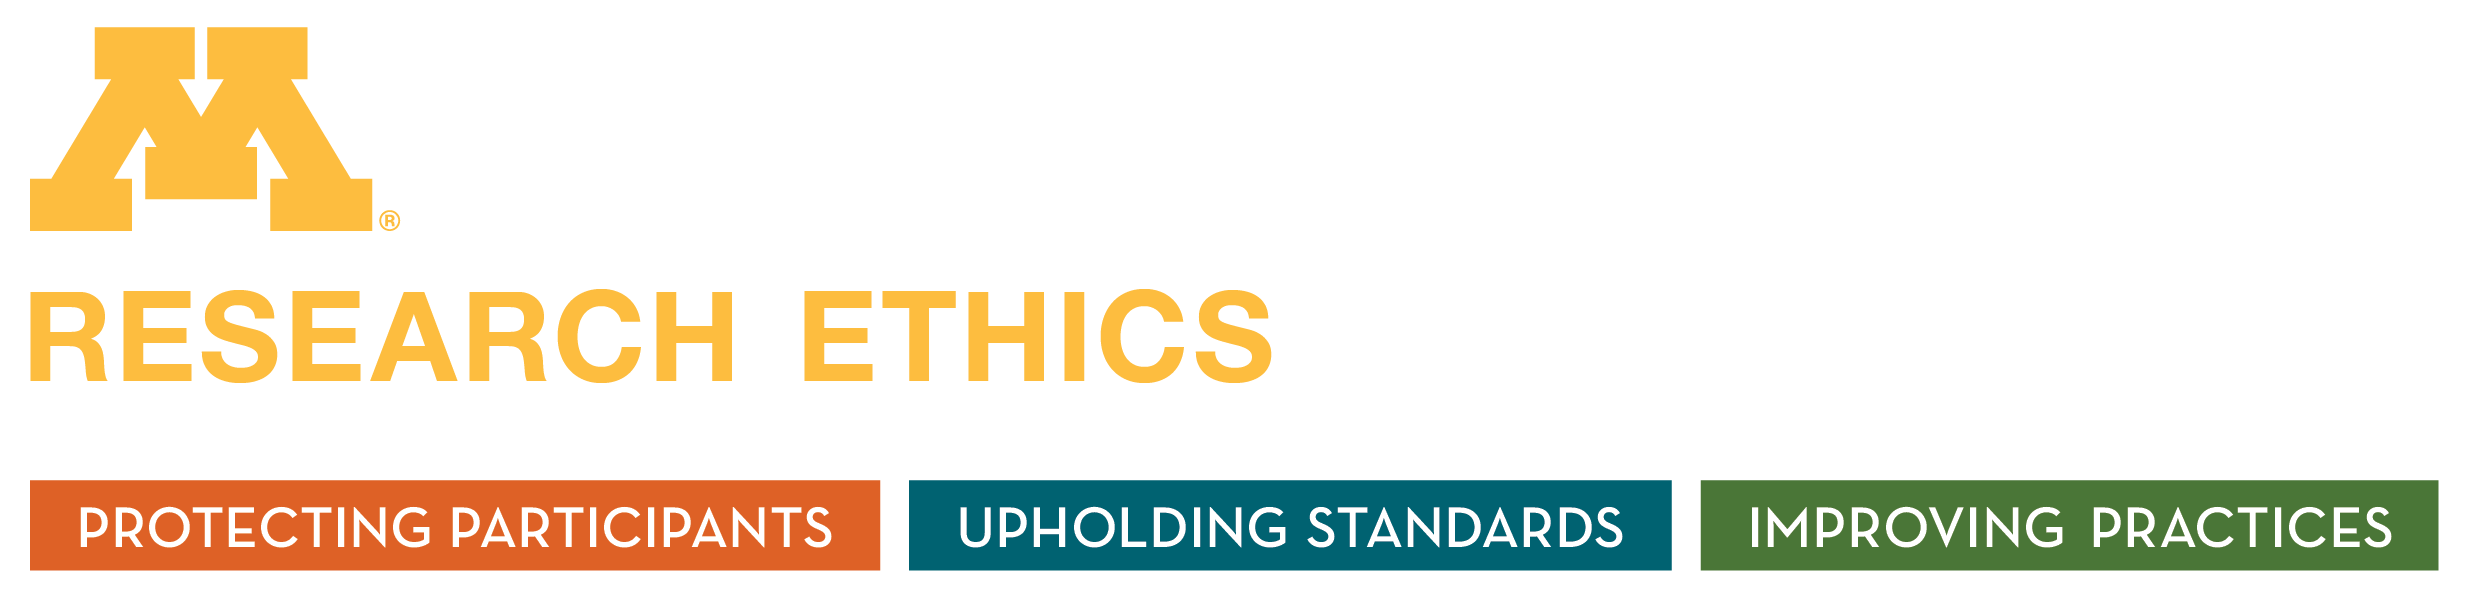 Research Ethics: Protecting participants, upholding standards, improving practices